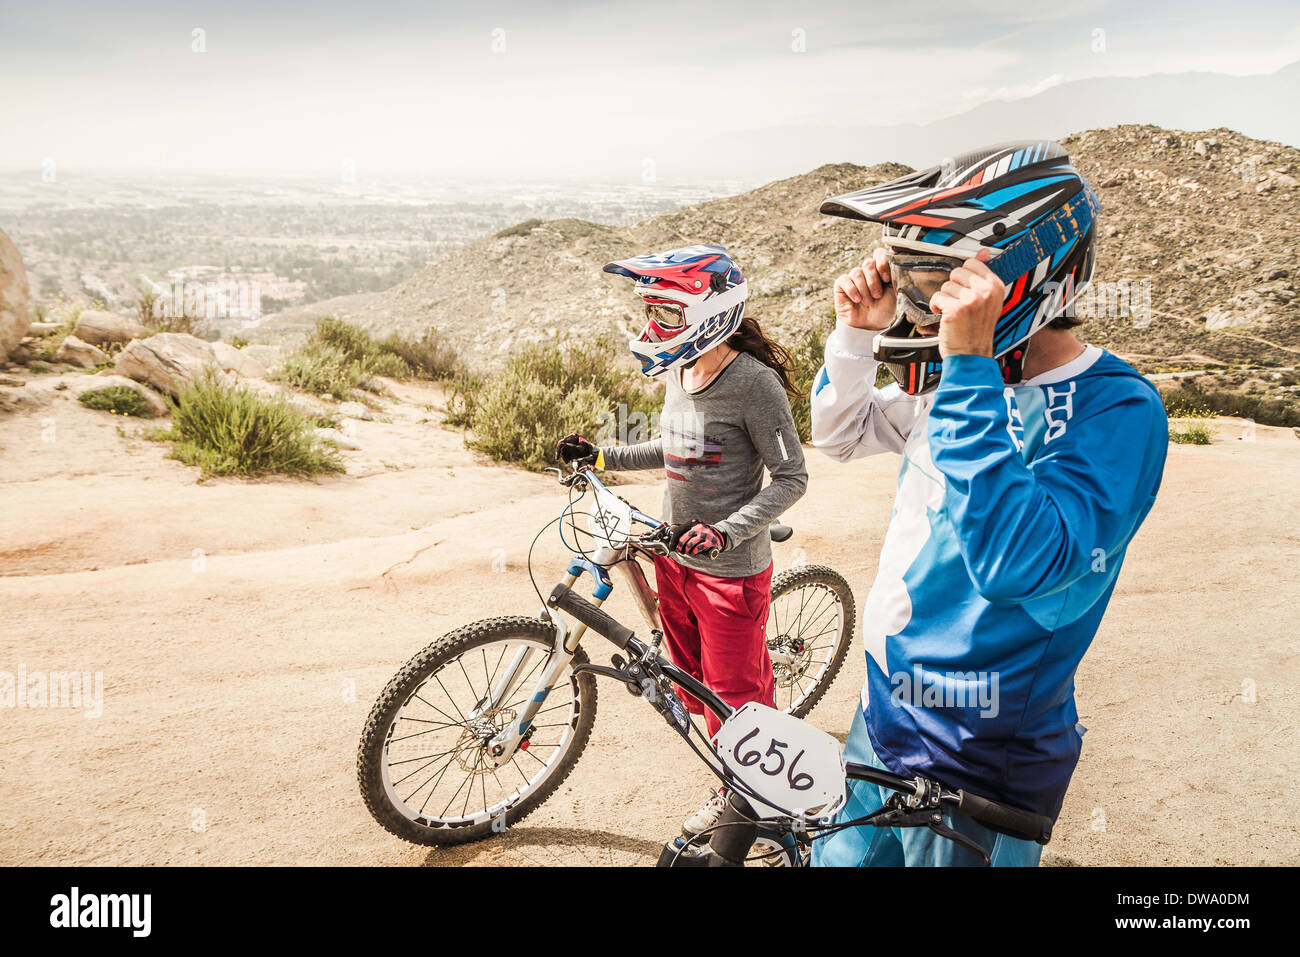 Male and female mountain bikers at race start line, Fontana, California, USA - Stock Image